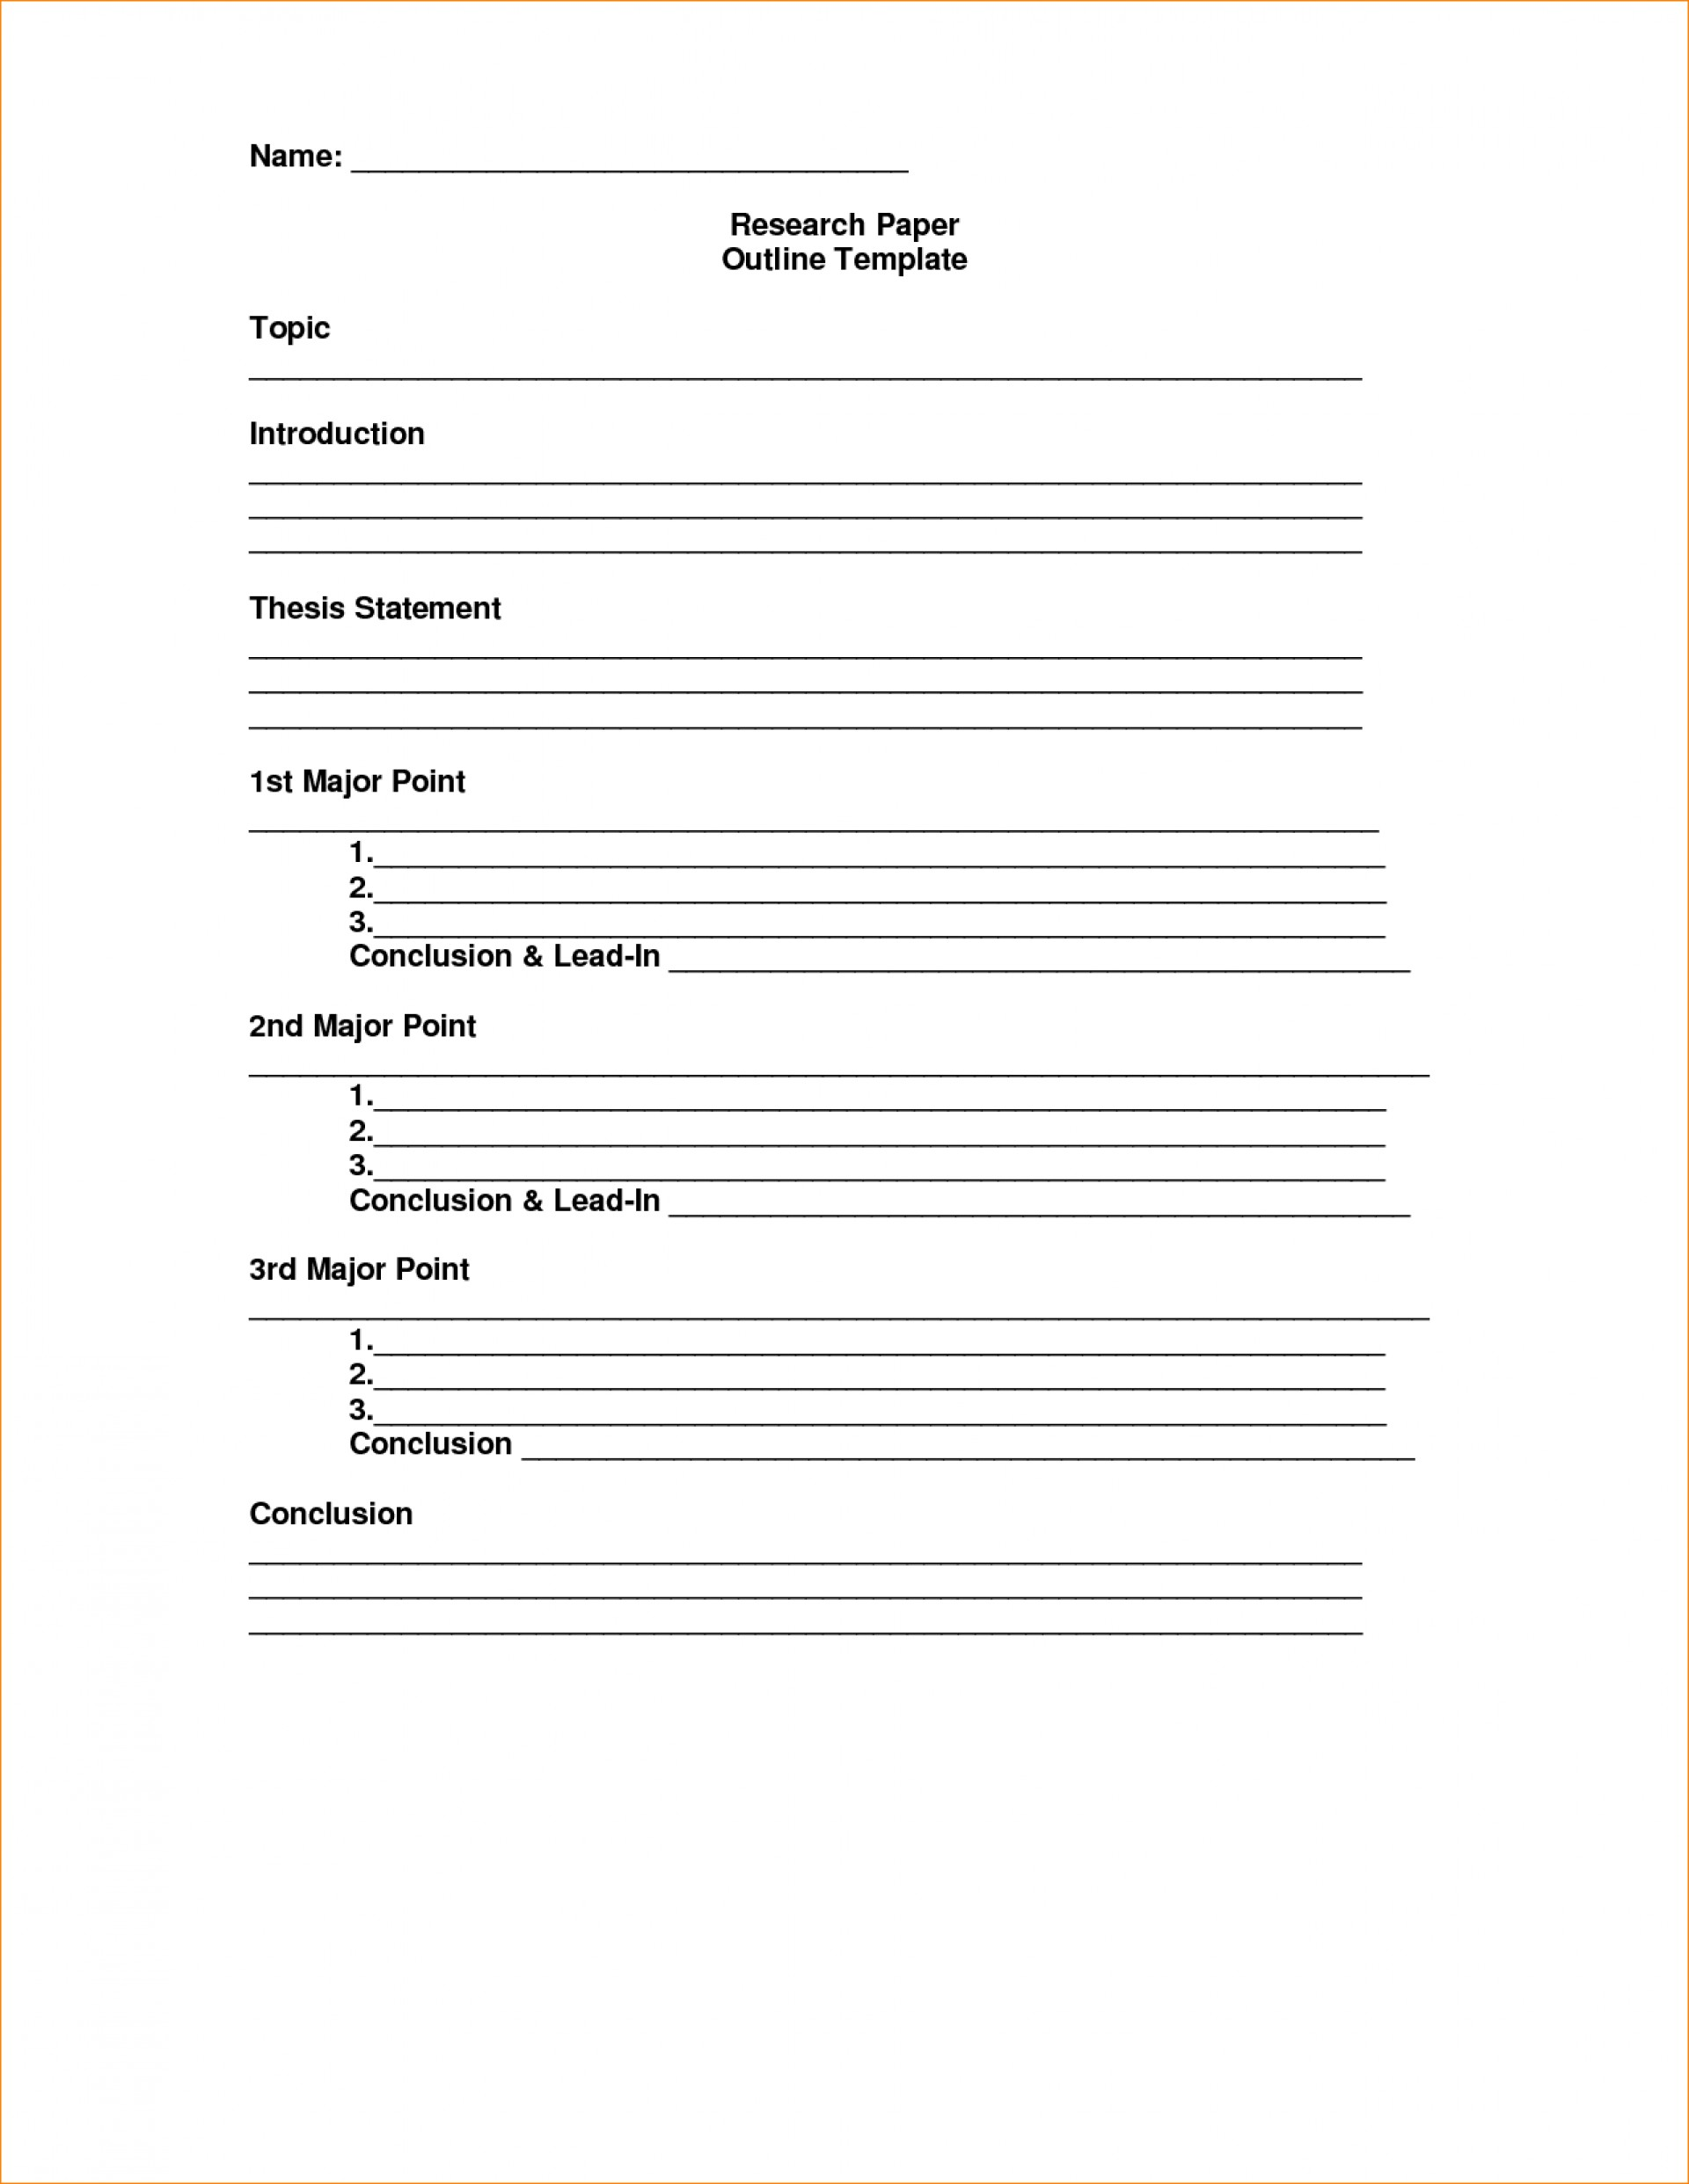 016 Note Cards Template For Research Paper Outline Astounding Example Of Notecards 1920